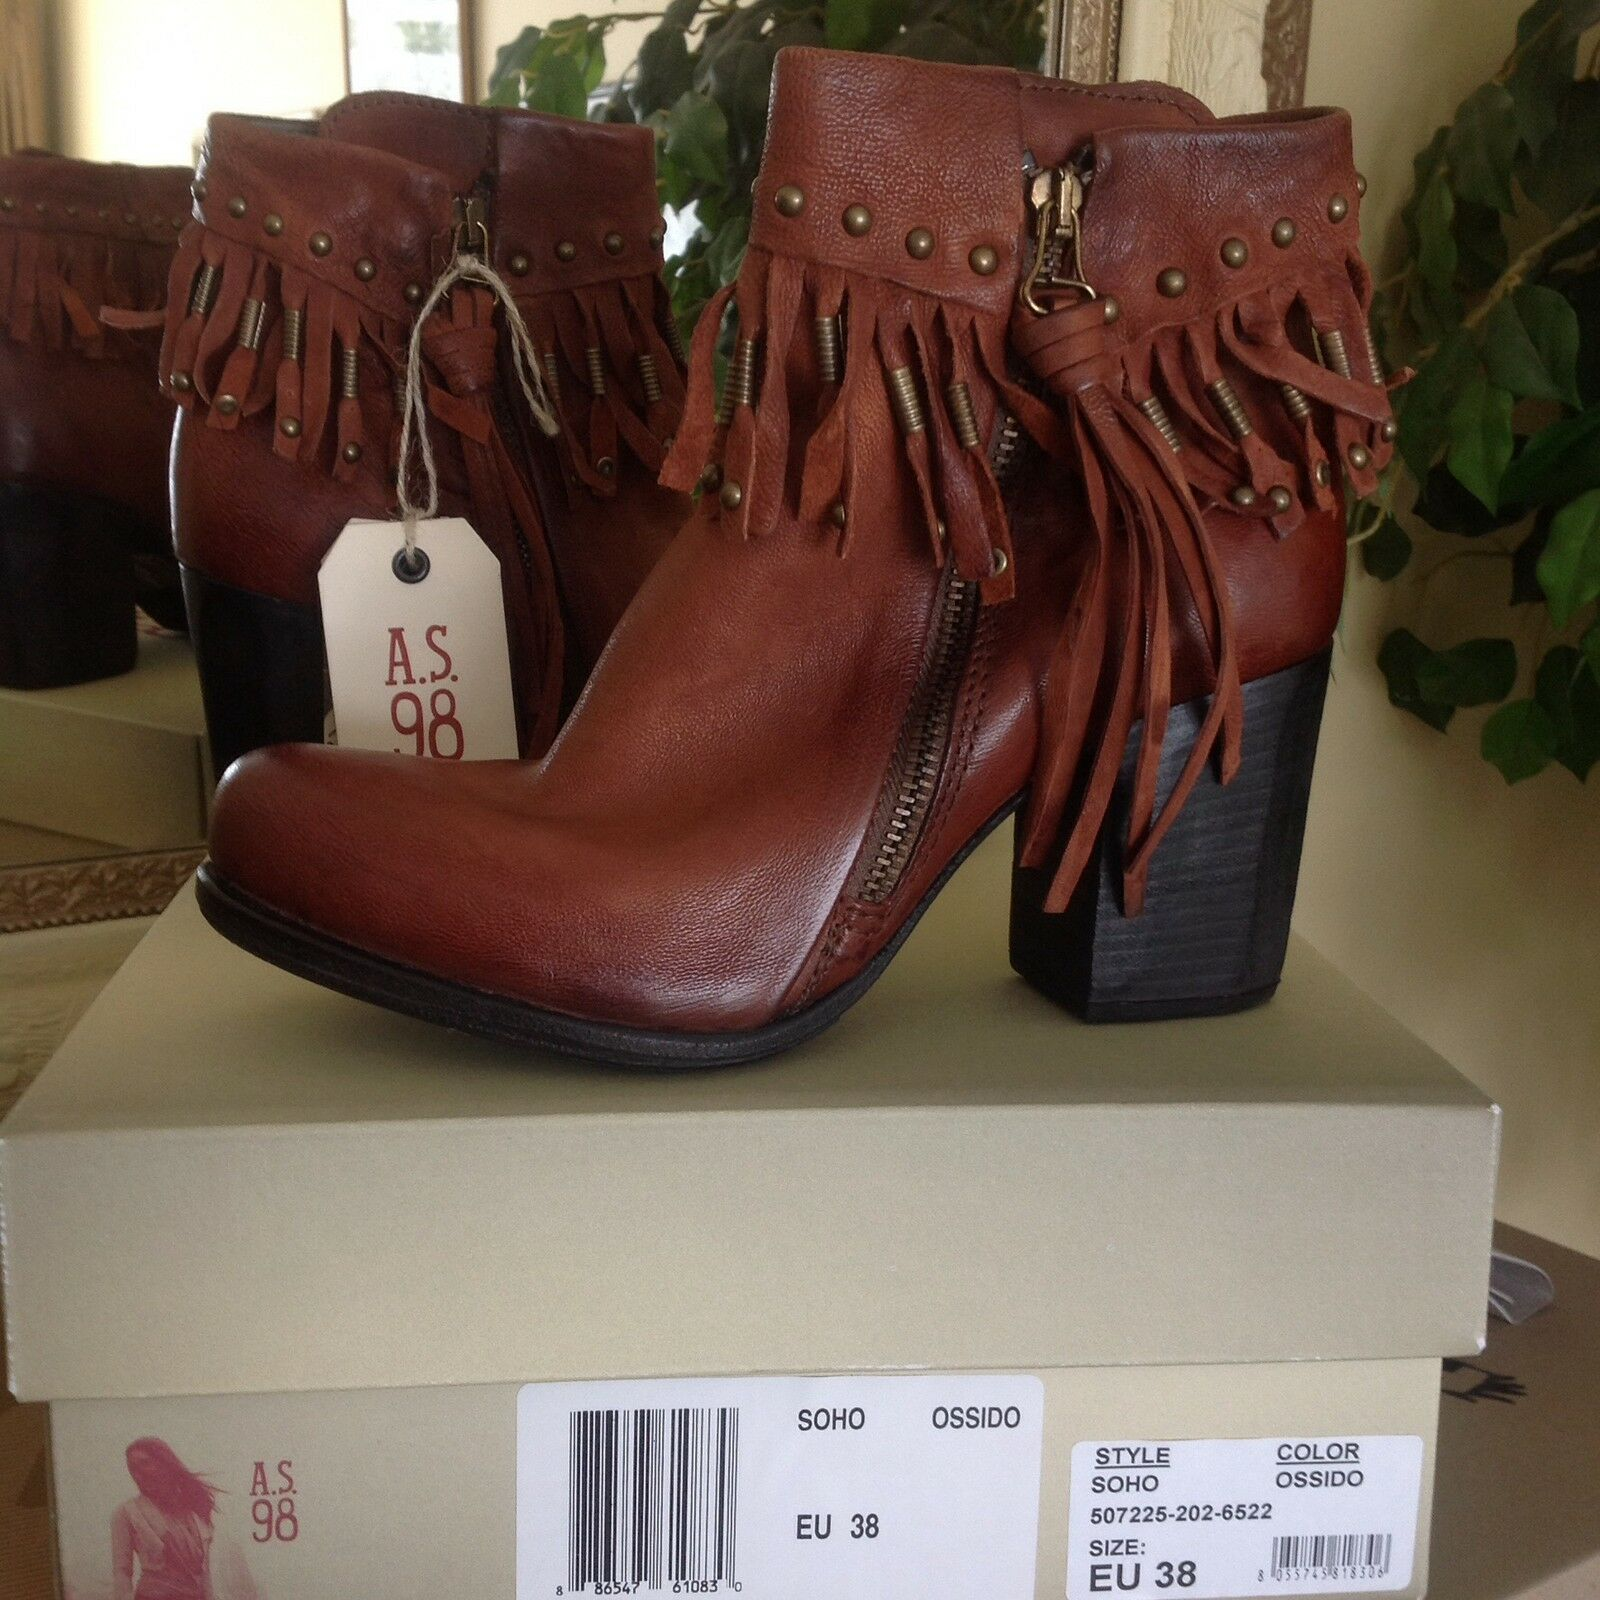 A.S. 98 Soho Womens Fringed Leather Moto Ankle Boot  / 9.5-10M MSRP $375